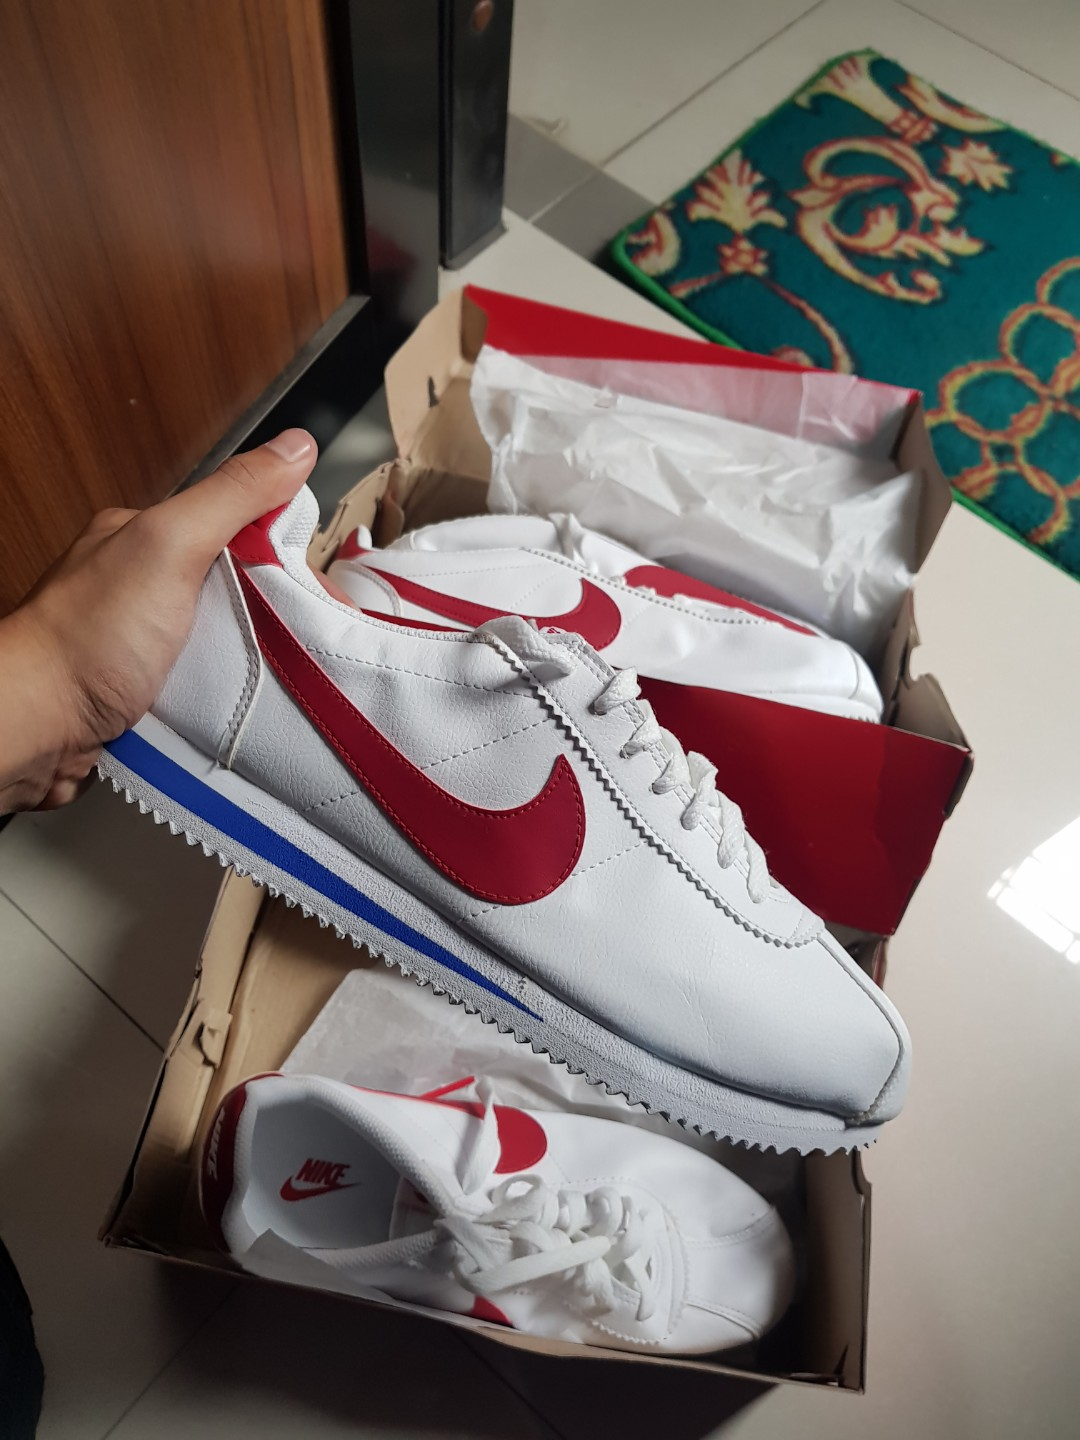 NIKE CORTEZ FOREST GUMP Mens Fashion Footwear Sneakers On Carousell